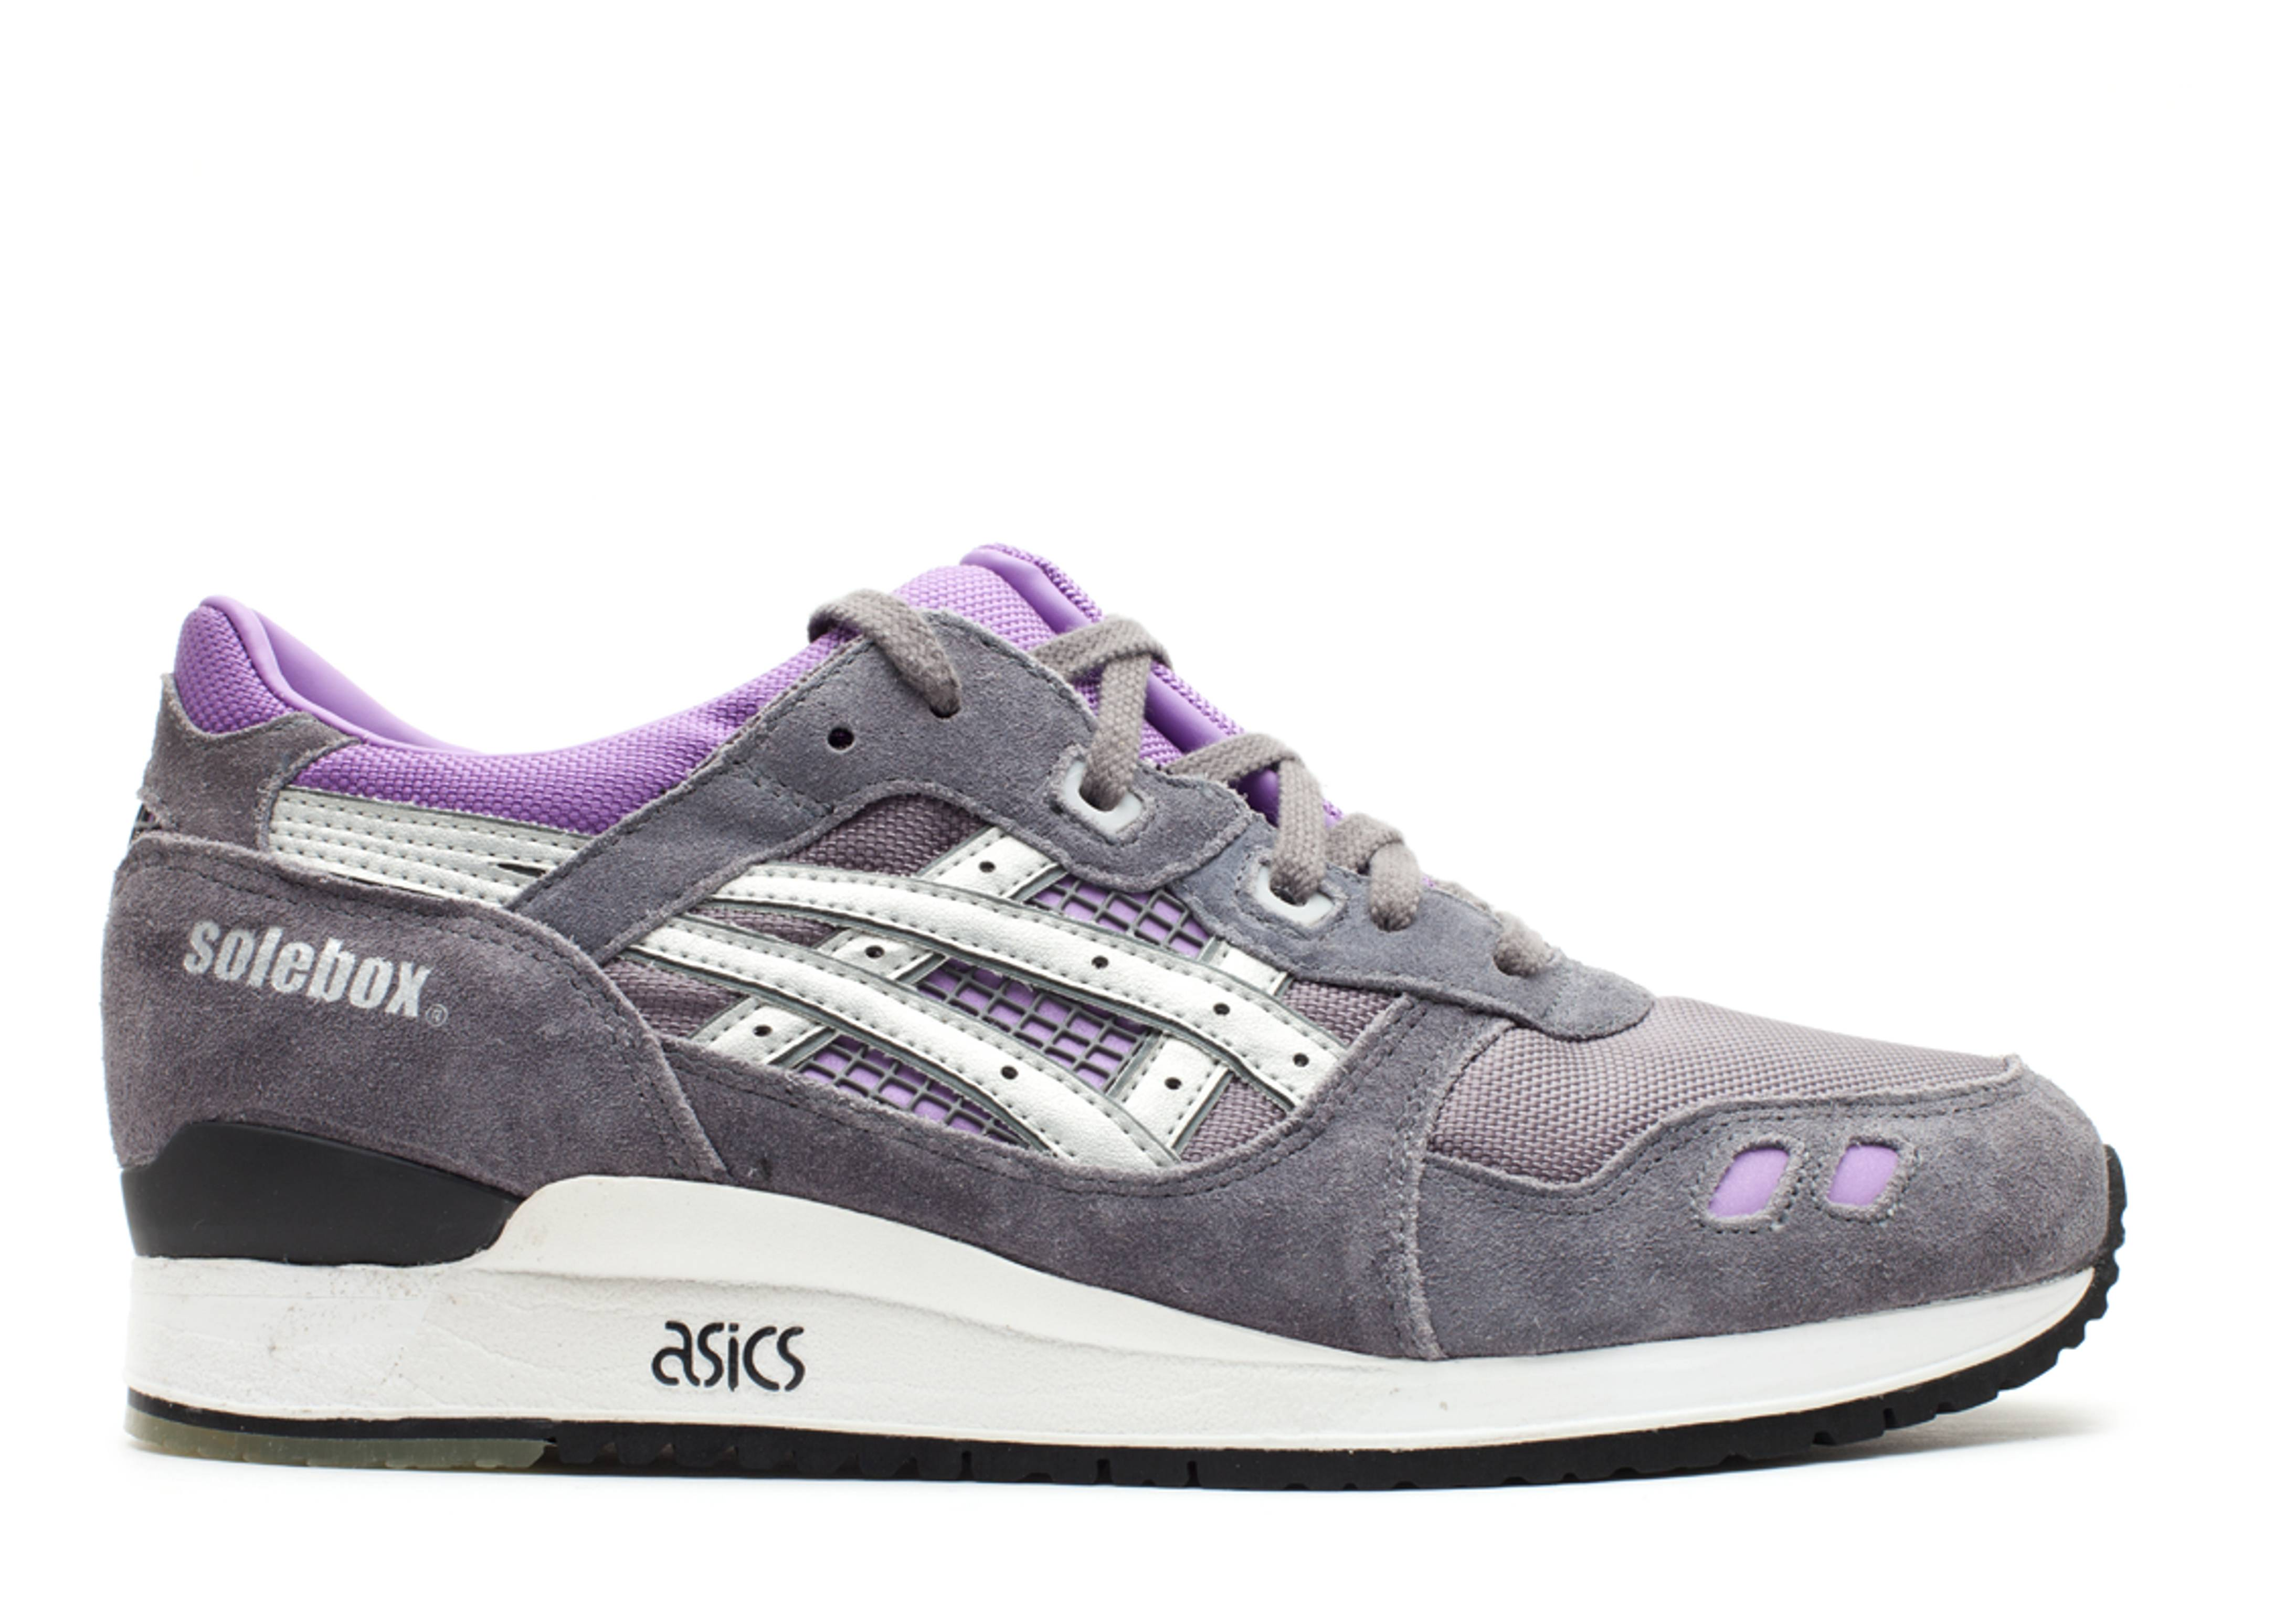 Asics Outdoor Gel Lyte 3 Purple Silver